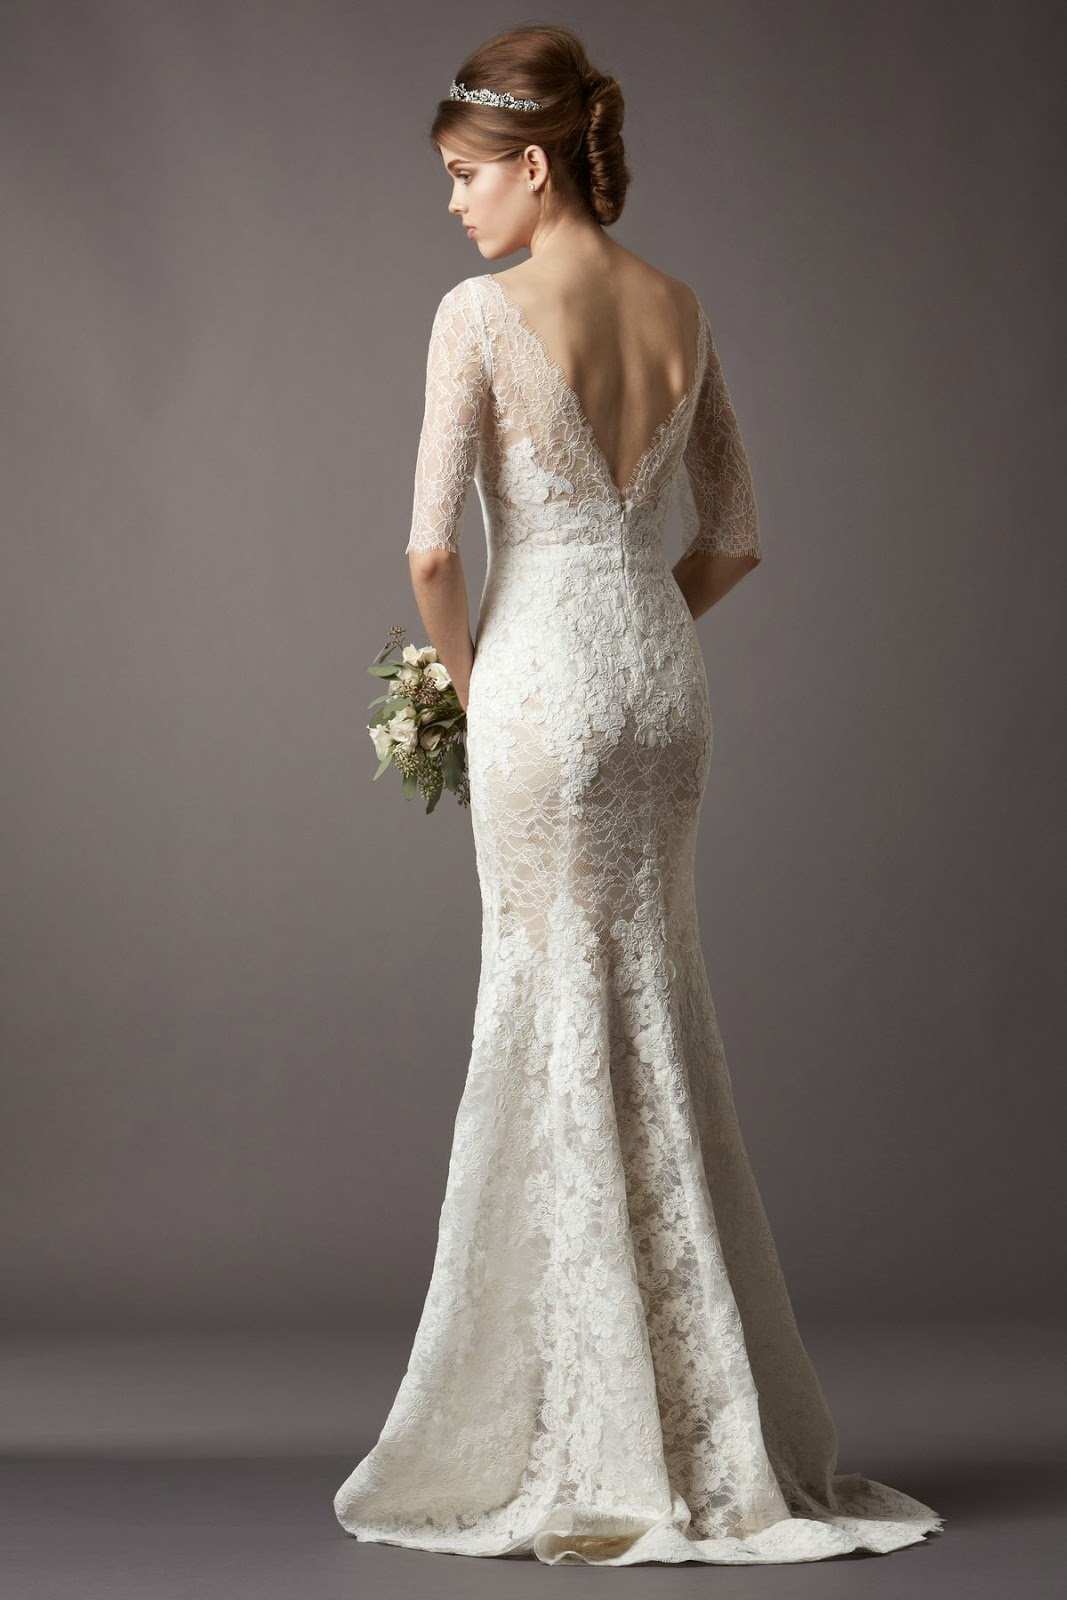 Link camp amazing wedding dress collection 2013 and 2014 34